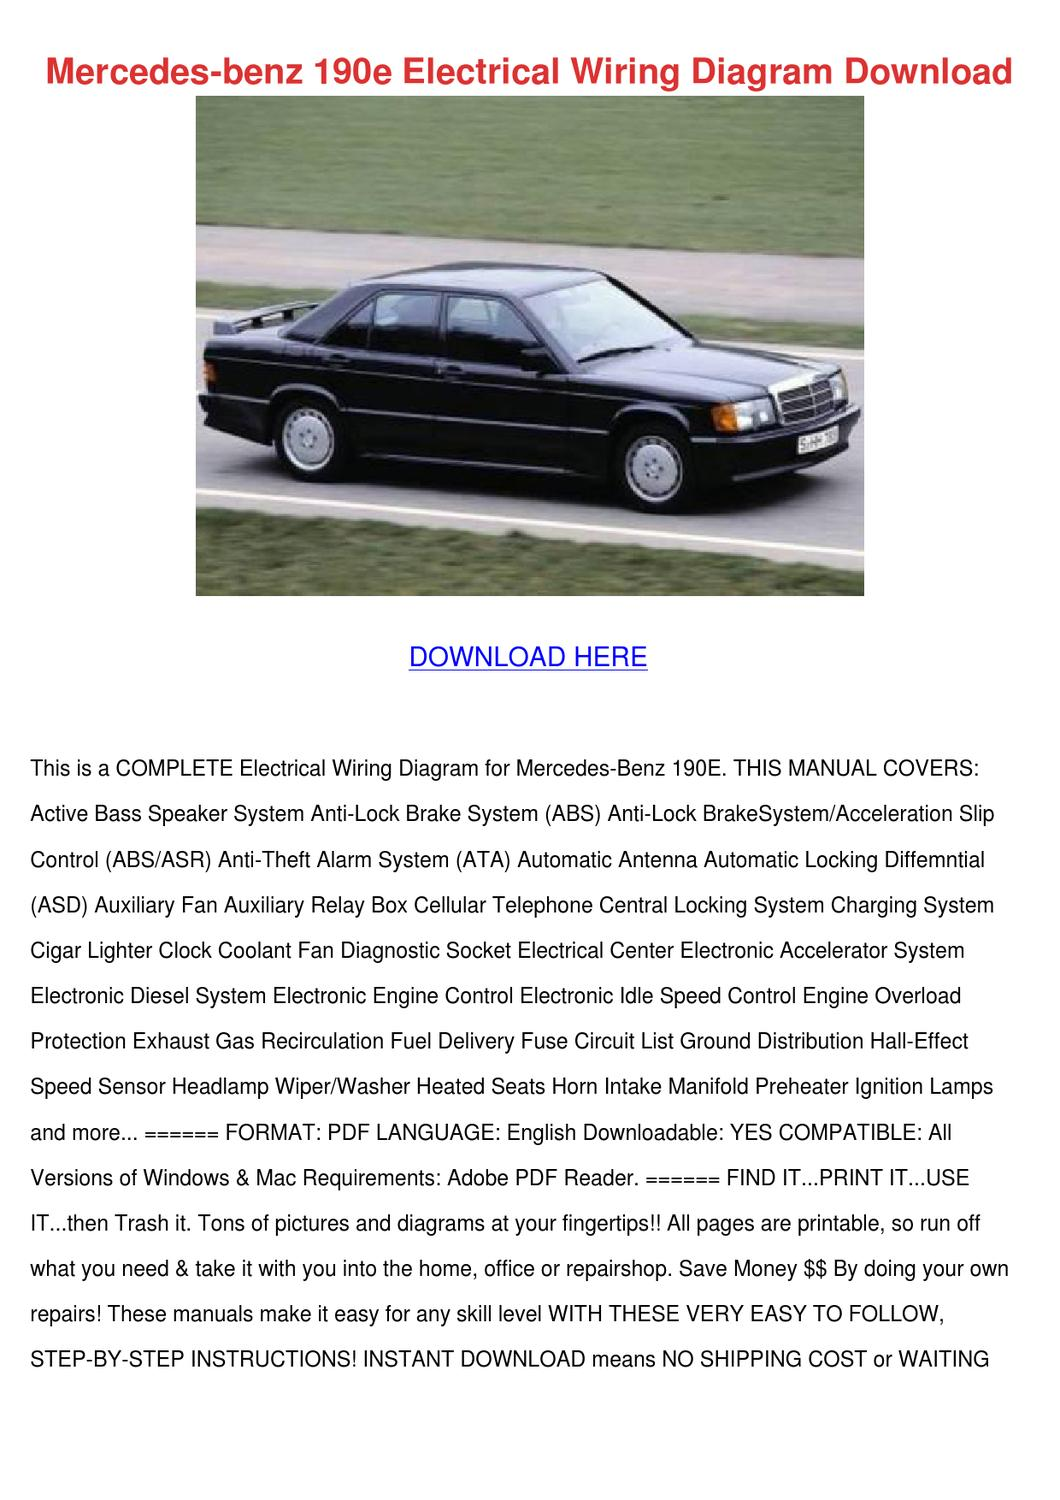 Mercedes Benz 190e Electrical Wiring Diagram By Arleneadam Issuu Active Electric Bass Diagrams